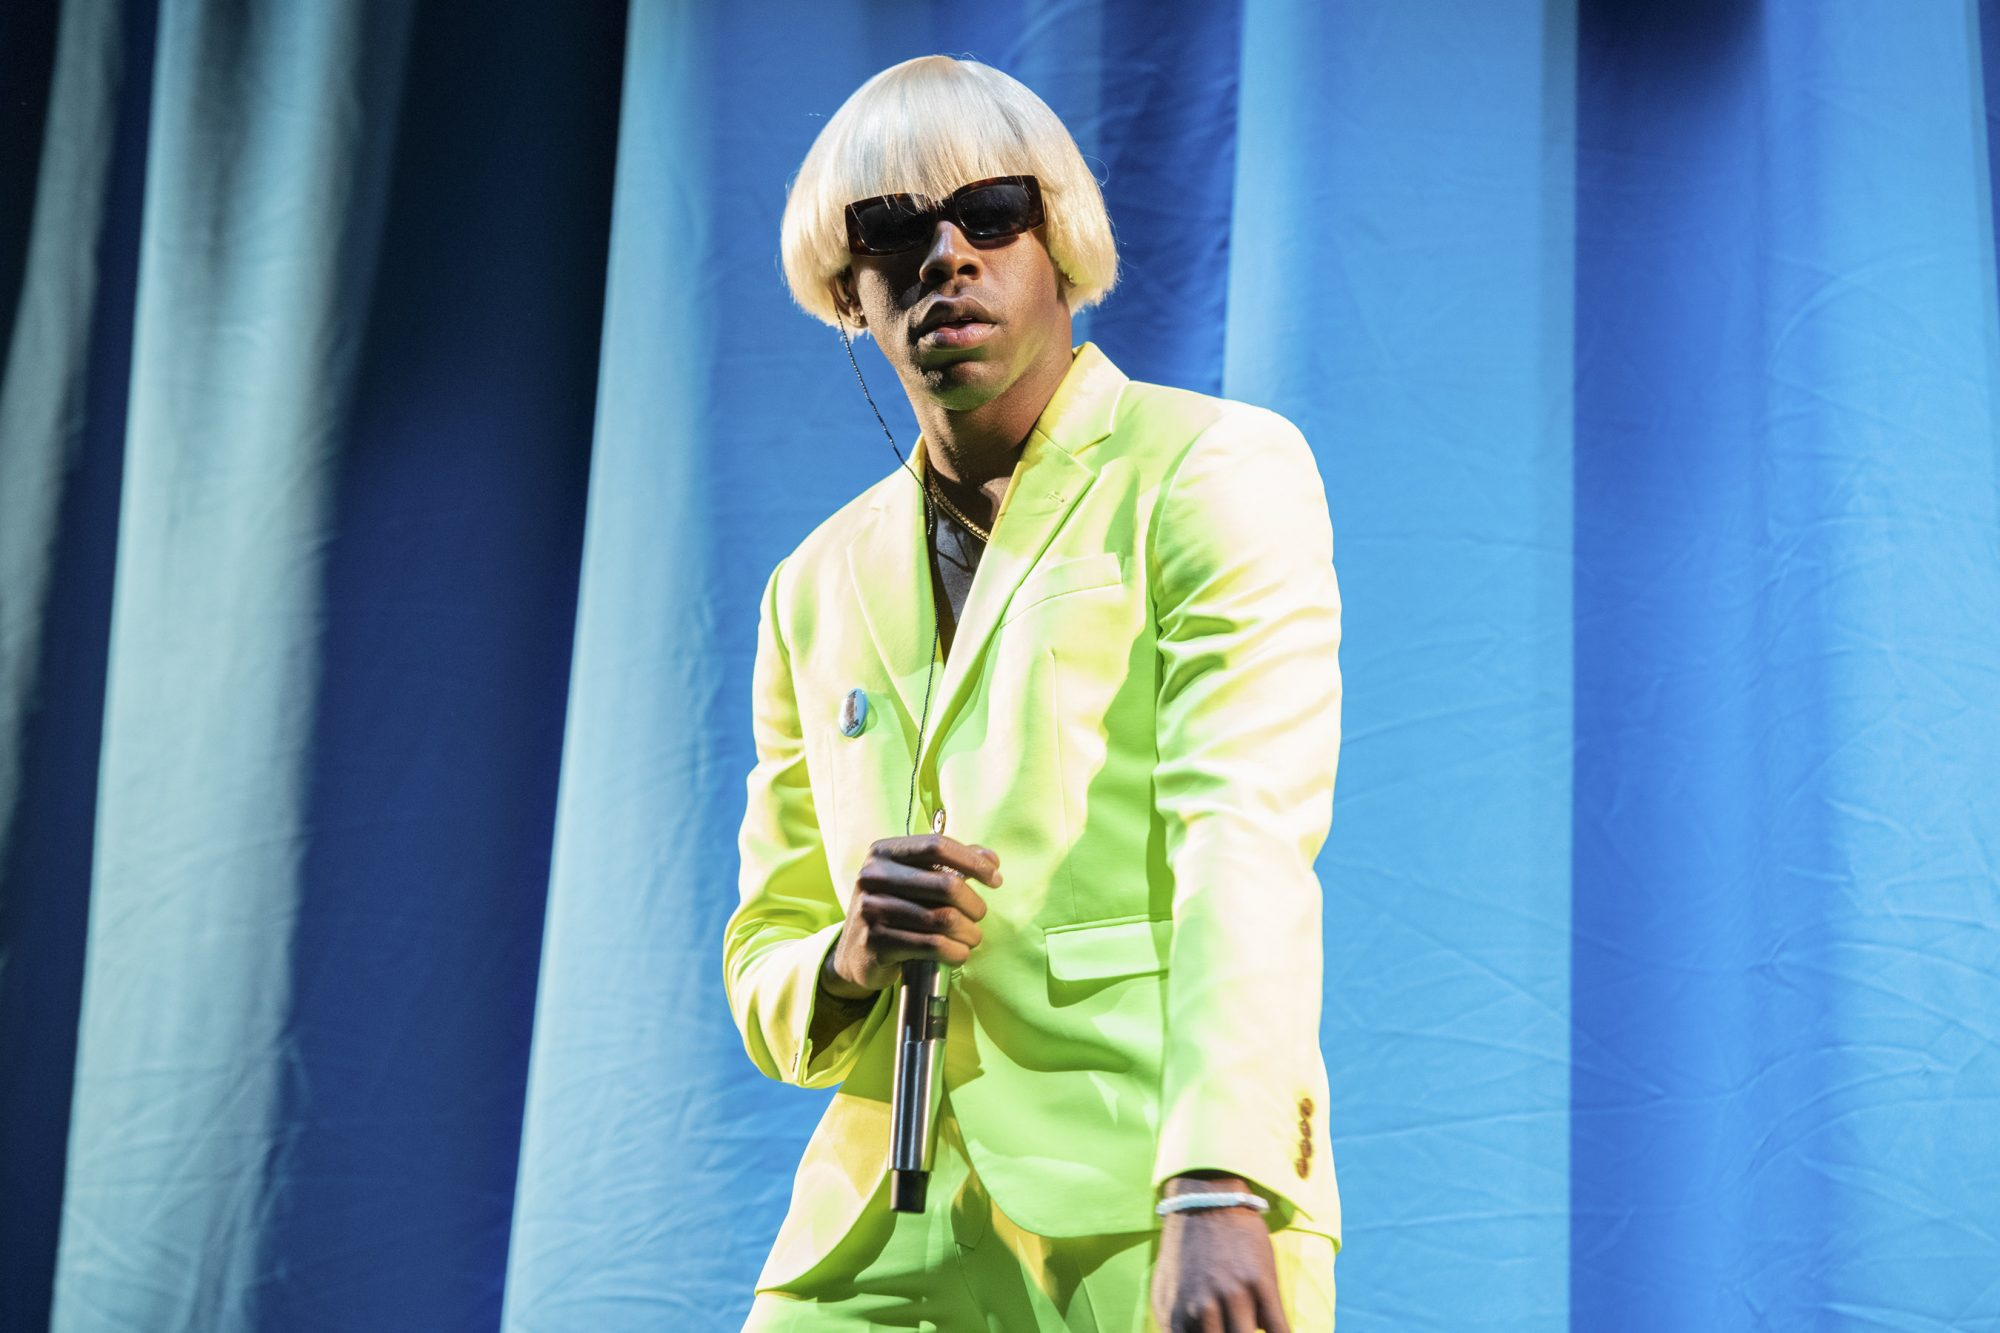 NEW YORK, NEW YORK - MAY 31: Tyler, the Creator performs at the 2019 Governors Ball Festival at Randall's Island on May 31, 2019 in New York City. (Photo by Noam Galai/Getty Images)